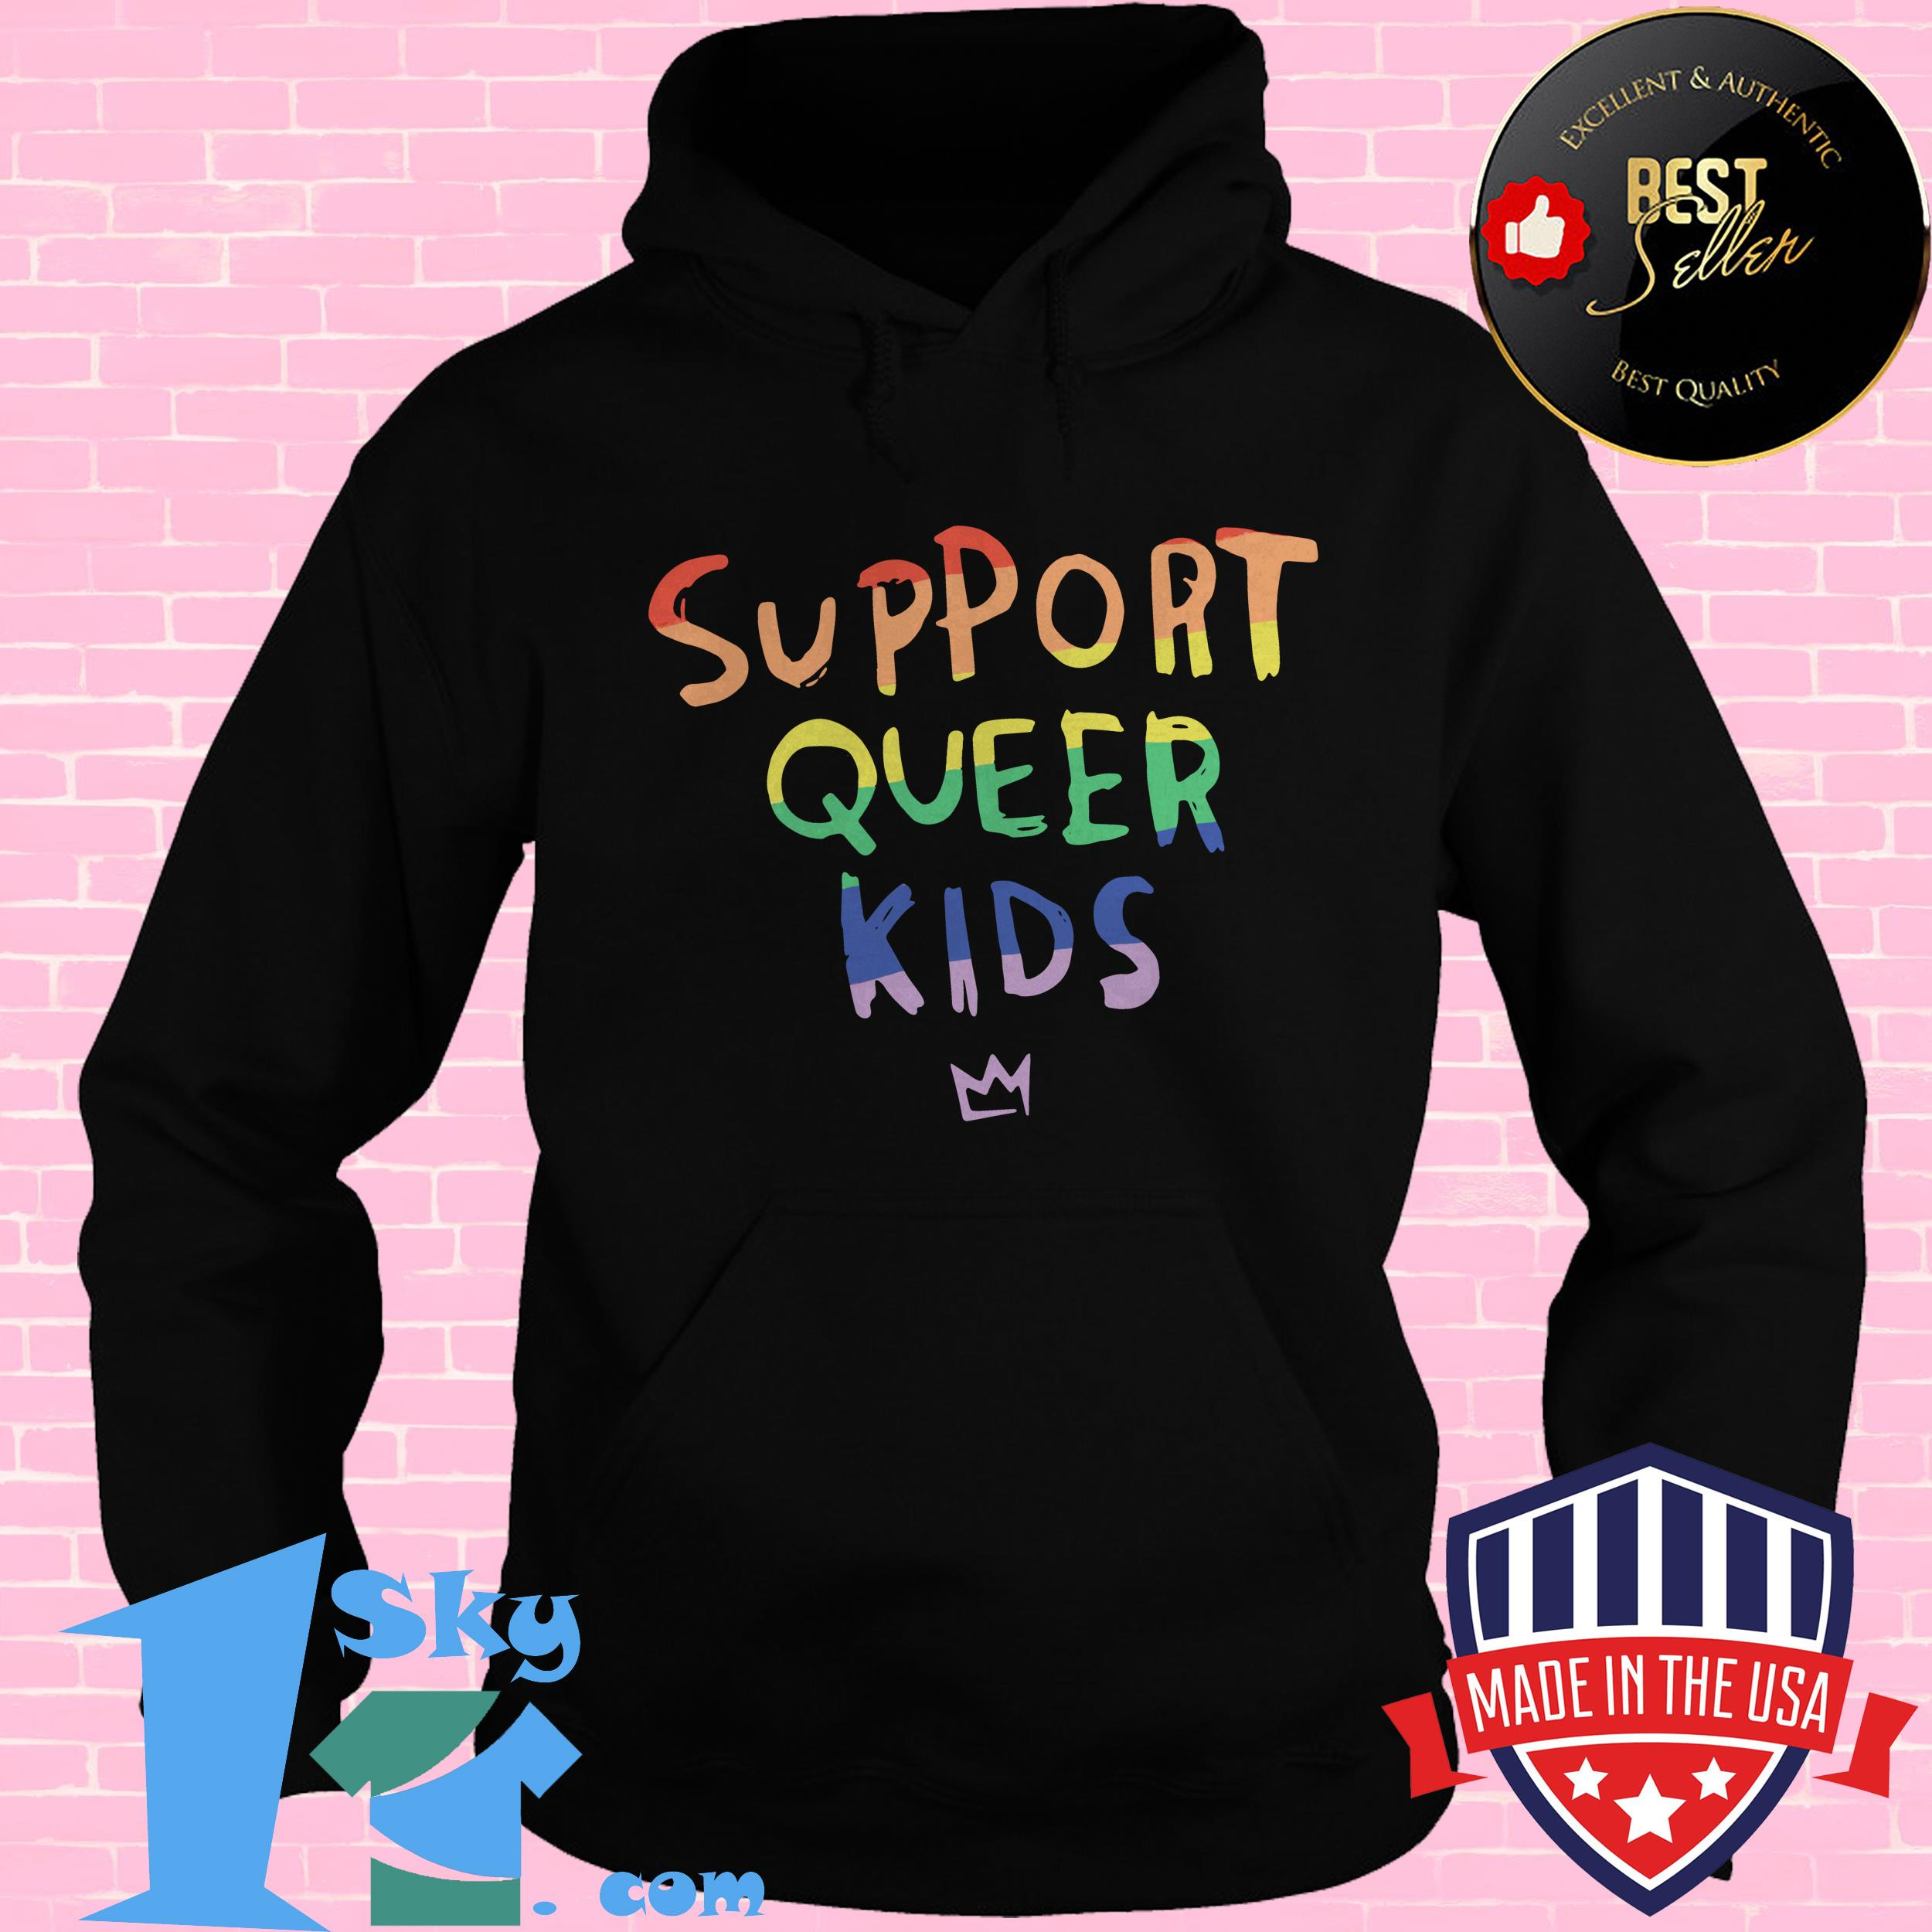 official support queer kids hoodie - Official LGBT Support Queer Kids shirt